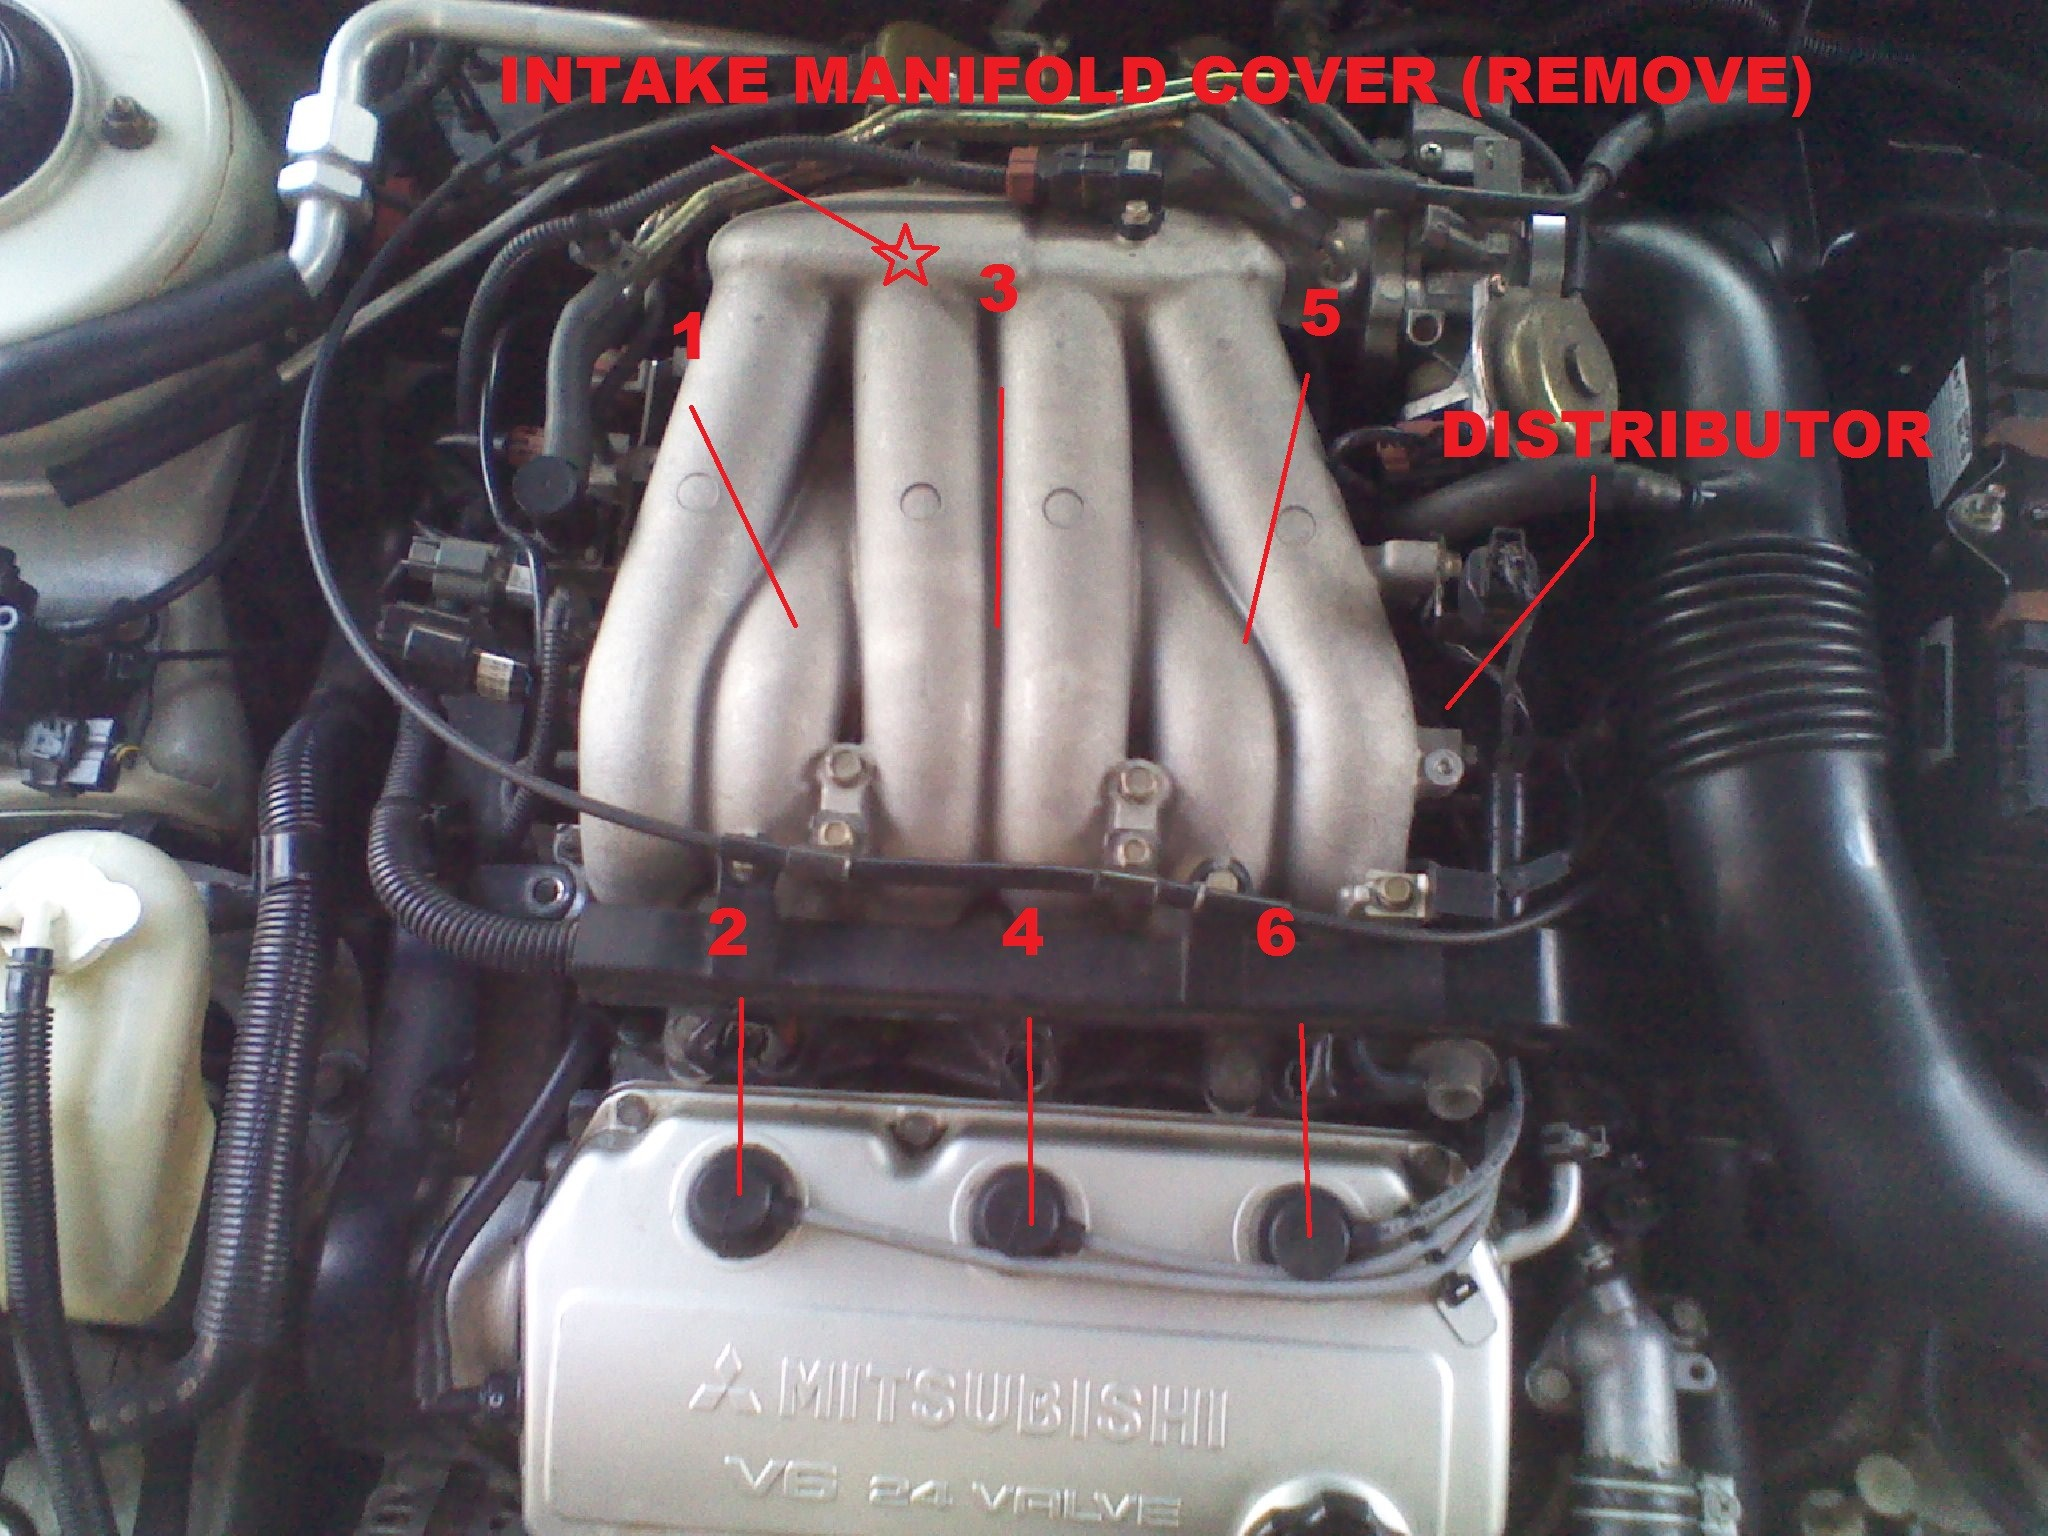 2000 Mitsubishi Galant Transmission Diagrams Wiring Mirage Fuse Diagram Engine How To Change I